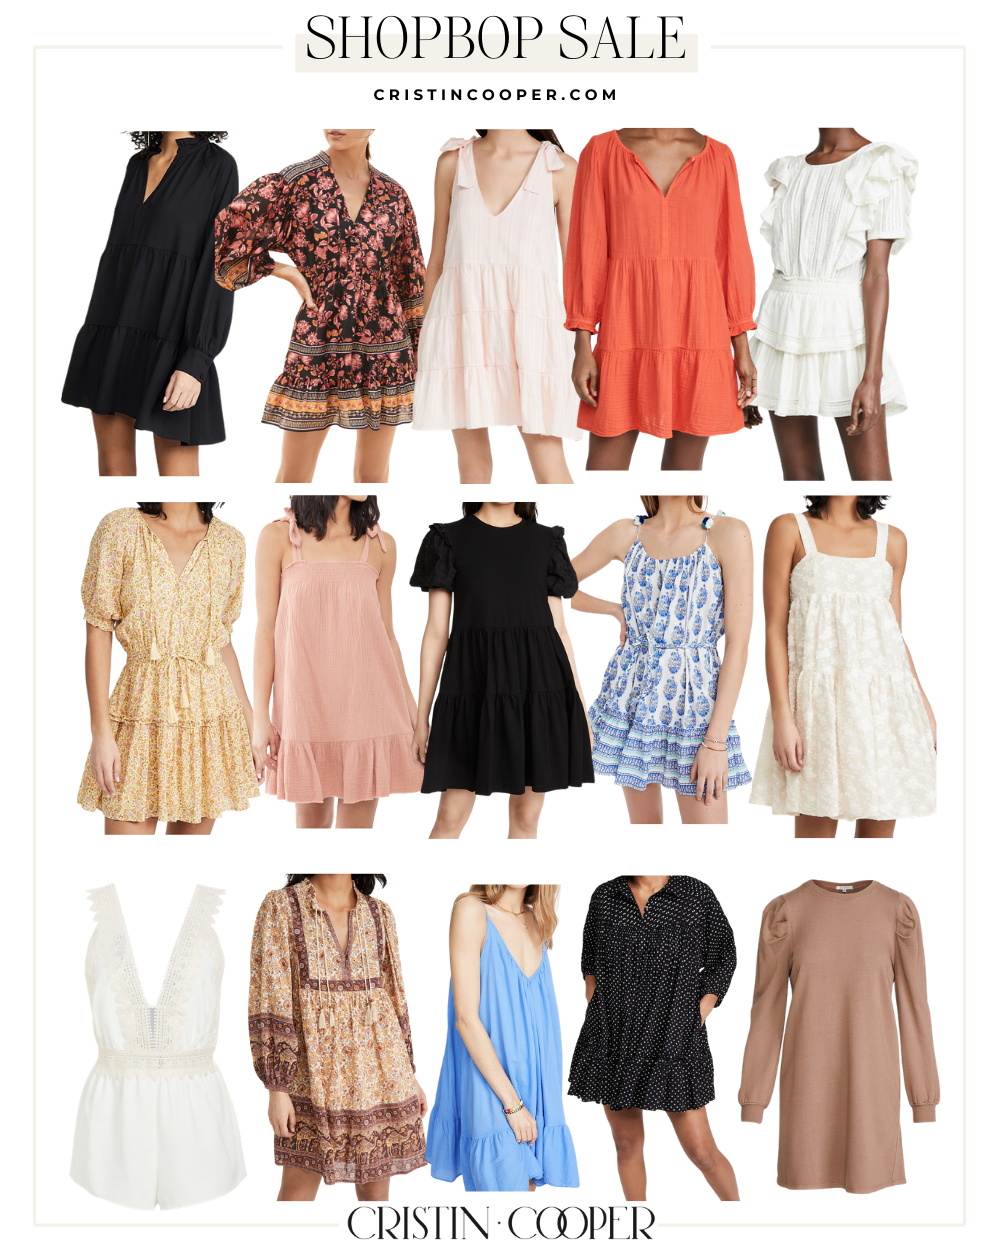 Dresses from the Shopbop spring sale.